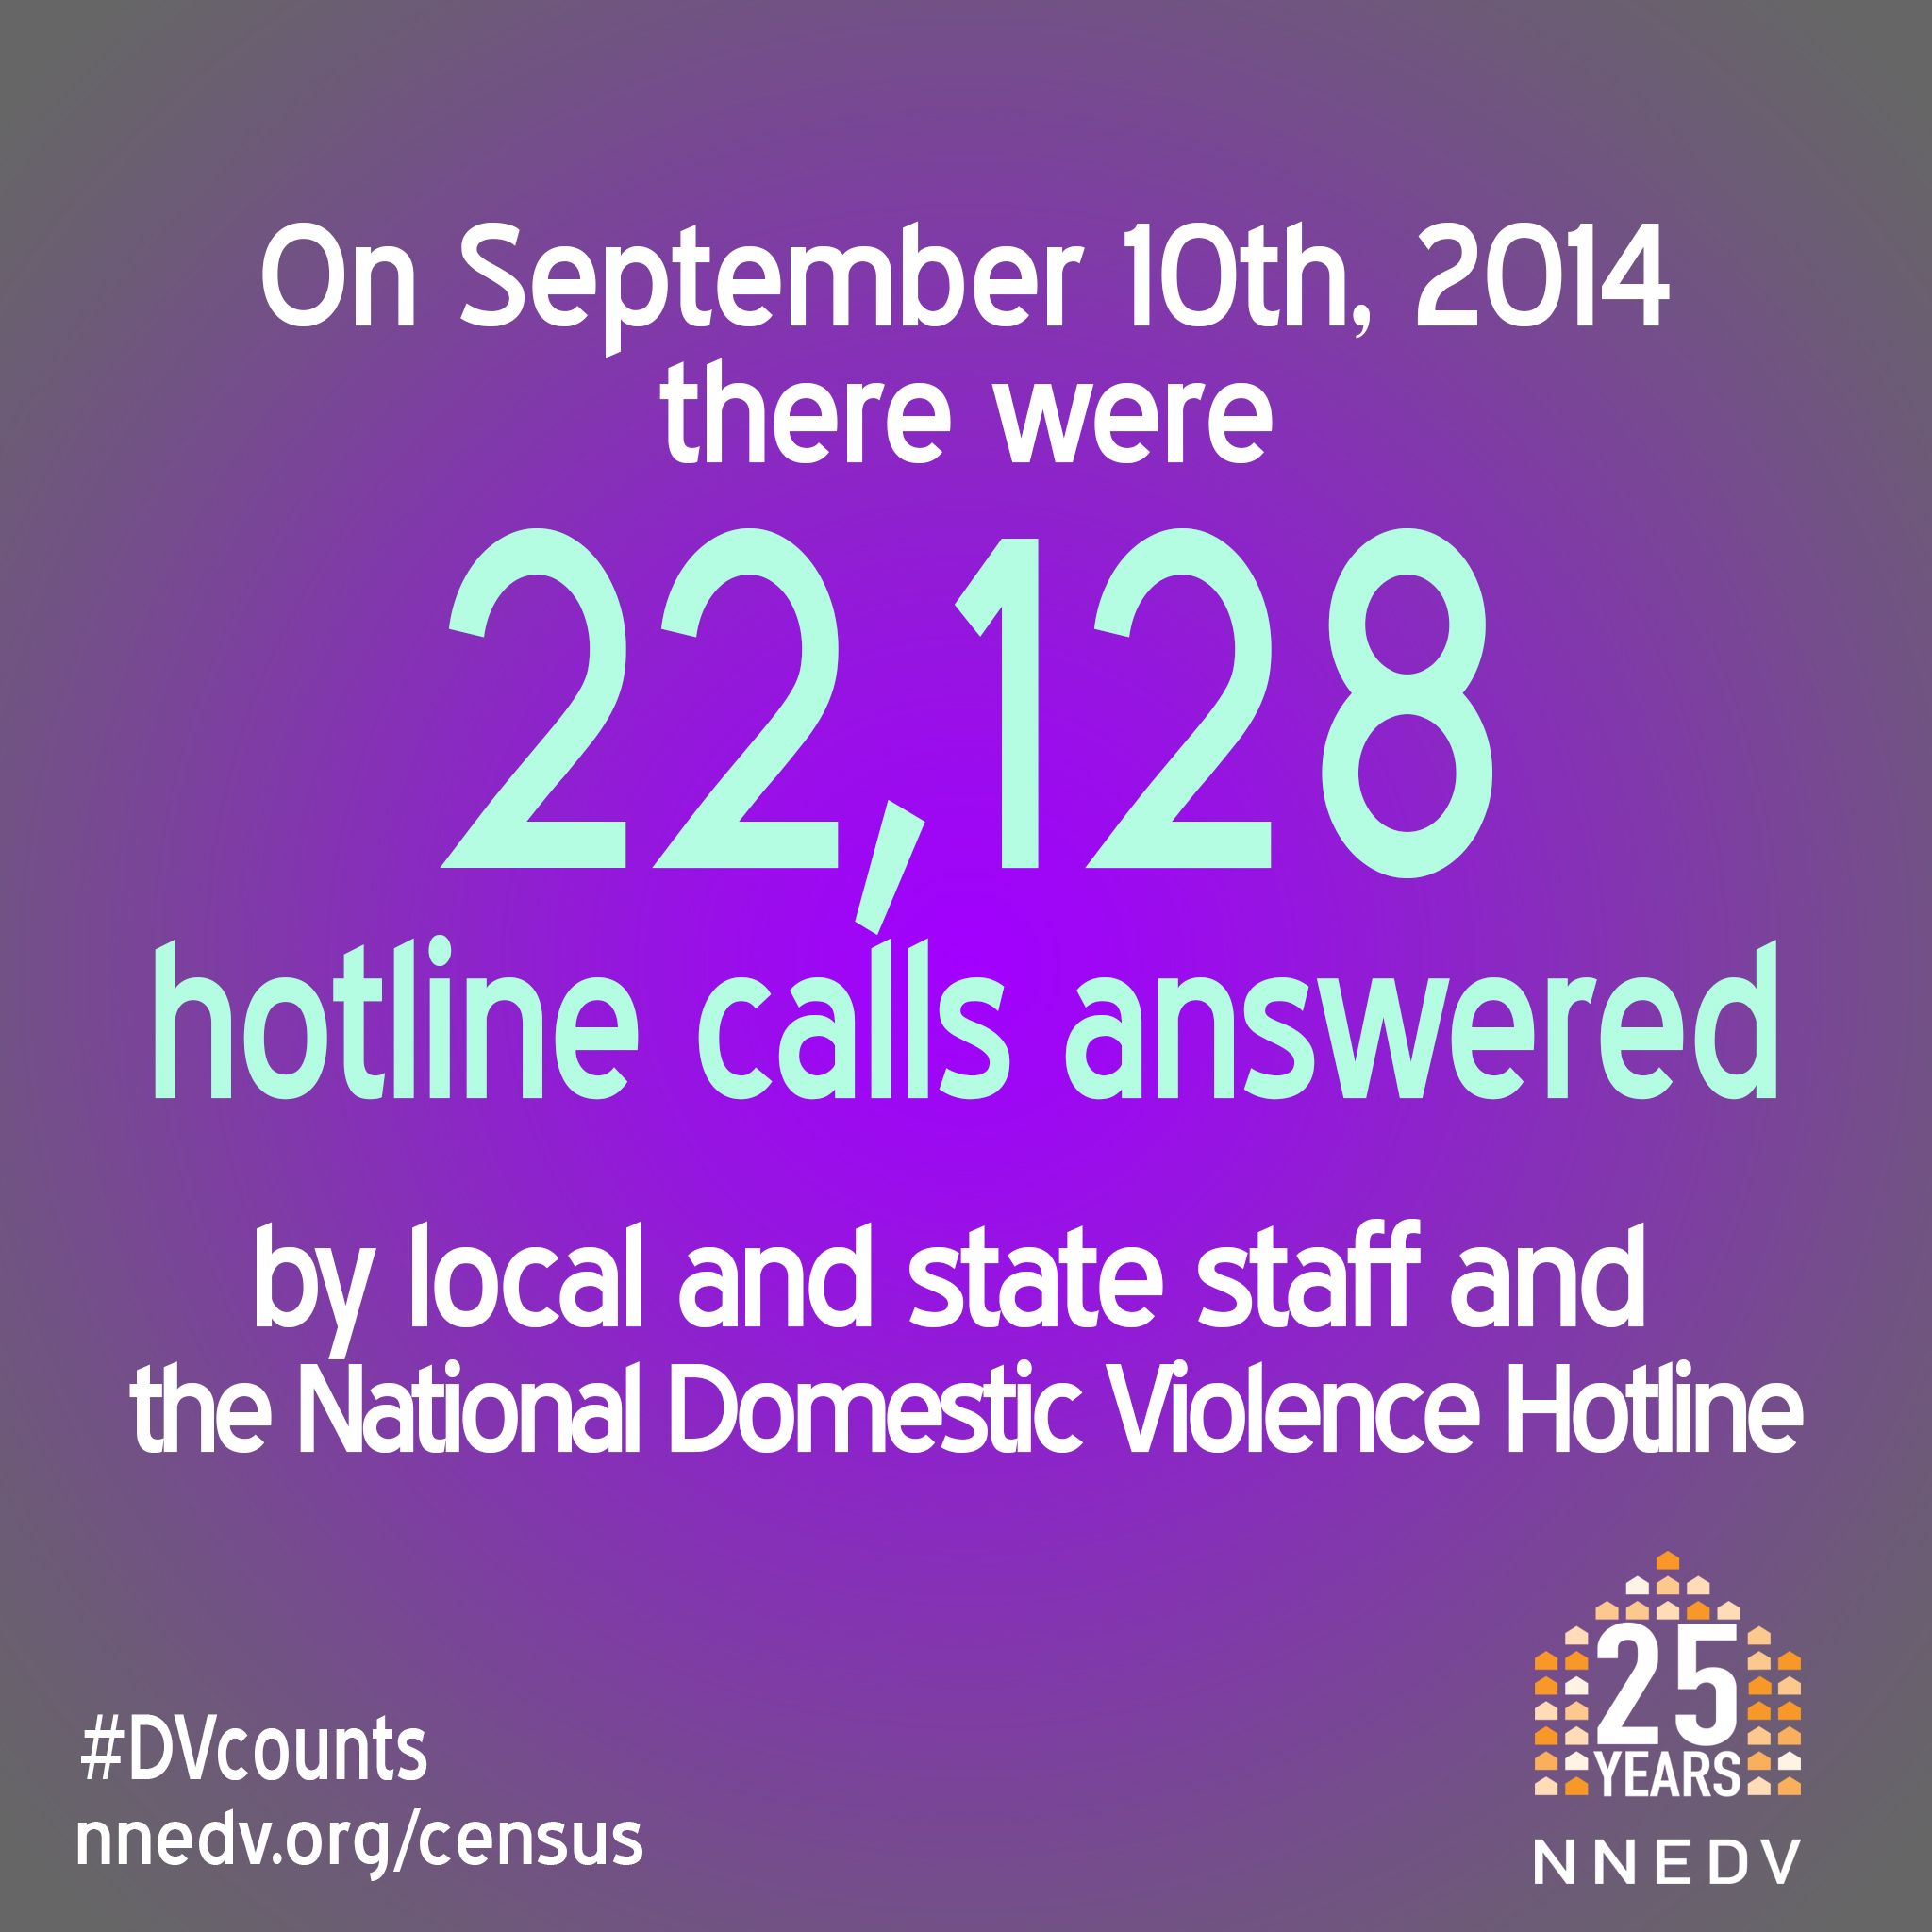 On September 10, 2014 there were 22,128 hotline calls answered! Local and state staff answered 20,845 calls and the National Domestic Violence Hotline answered 1,283 calls. #DVCounts Learn more: http://nnedv.org/census